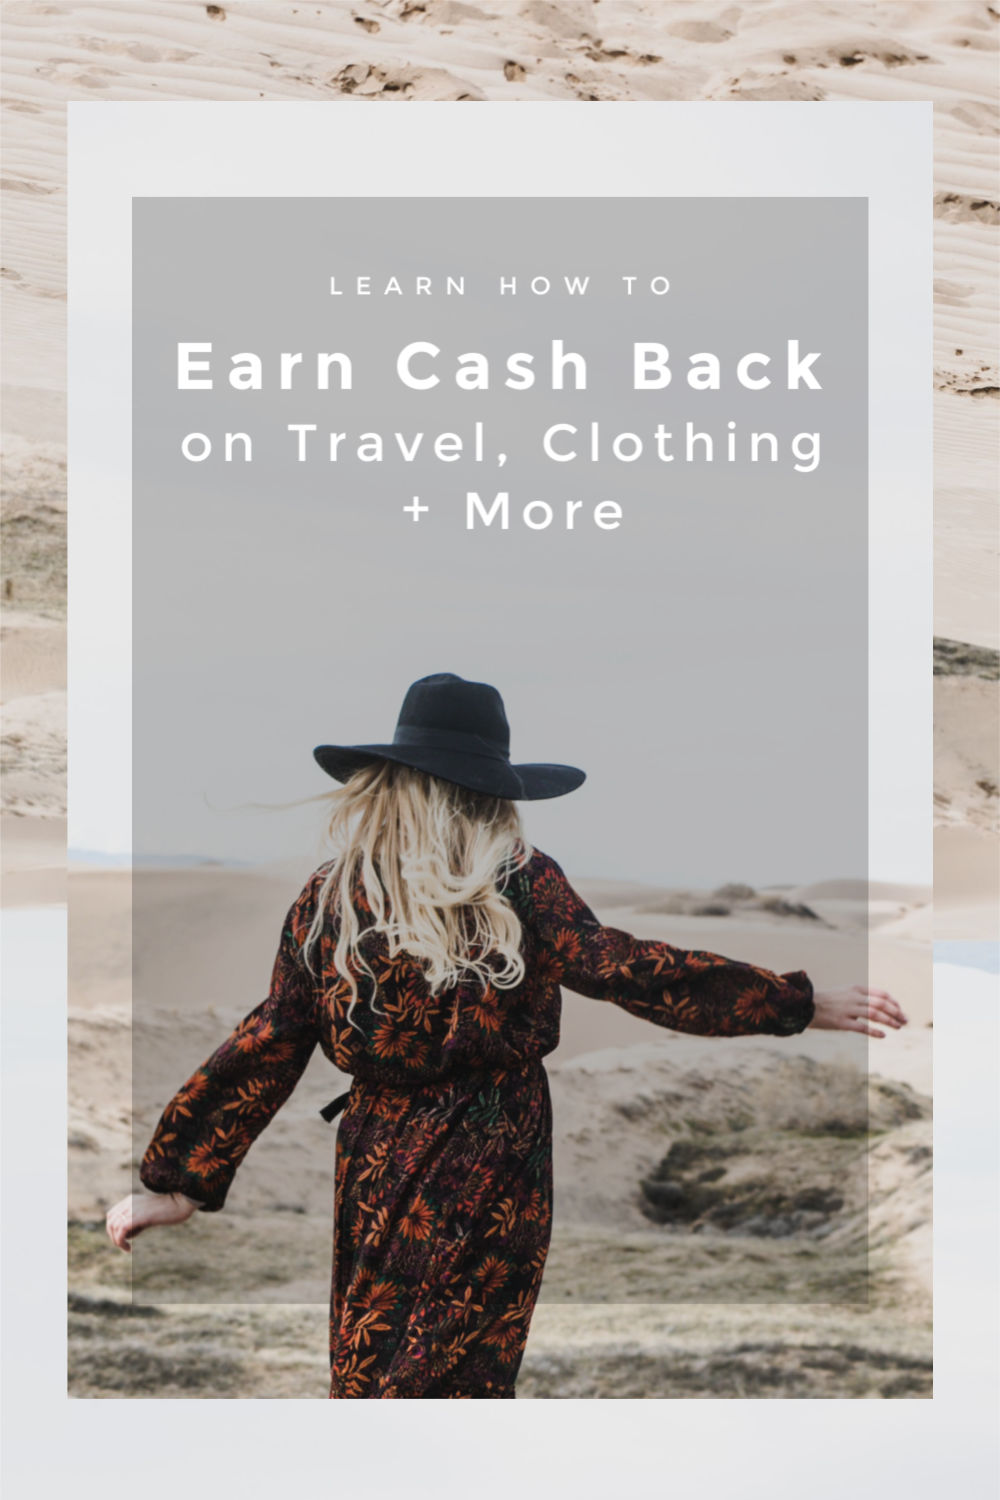 How to Earn Cash Back on Travel, Clothing + More